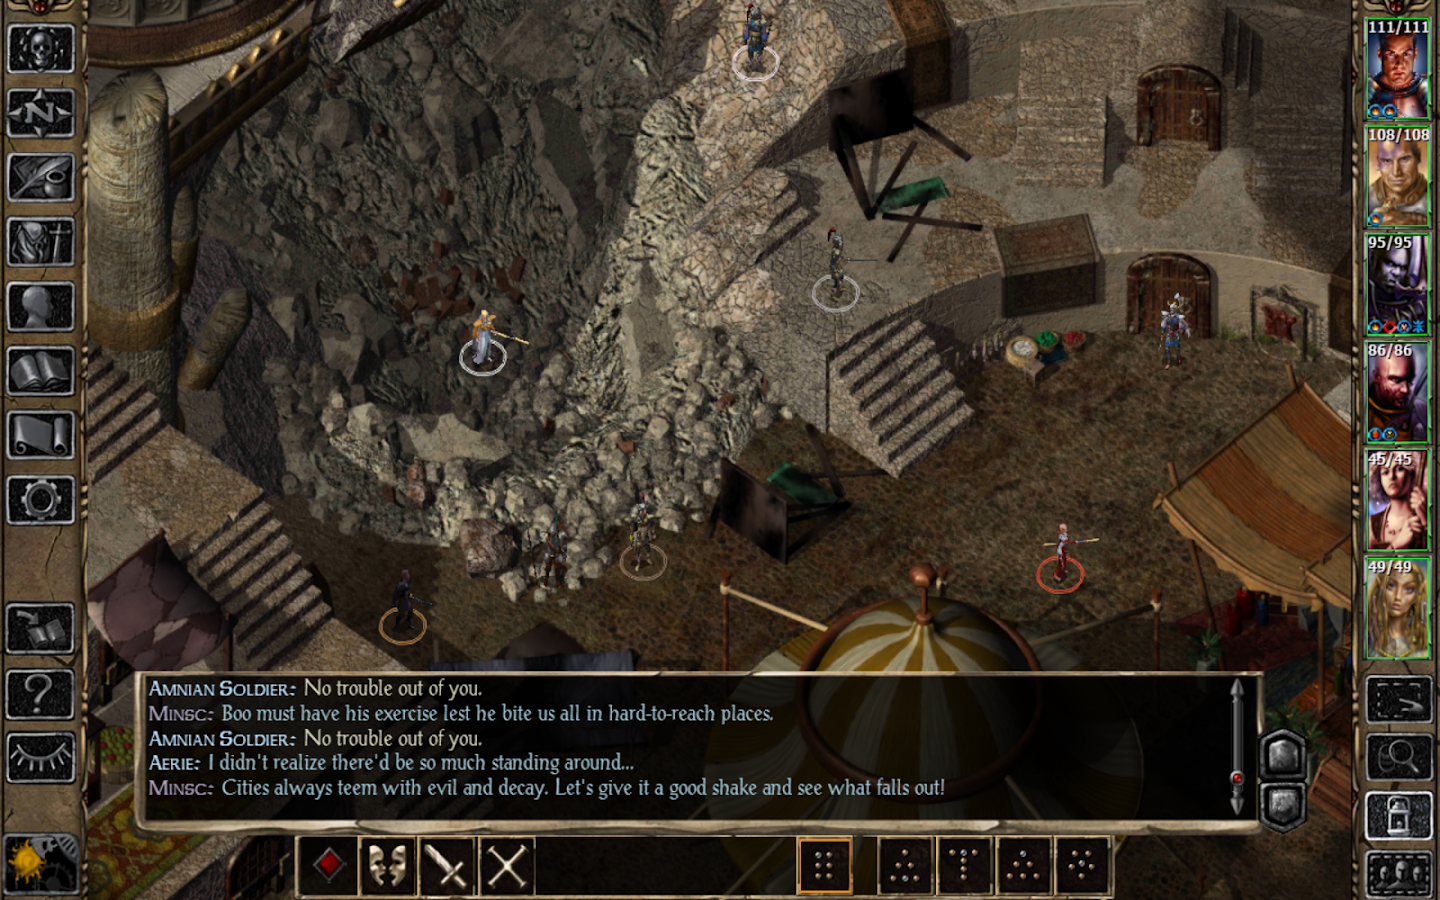 Baldur's Gate II Screenshot 8